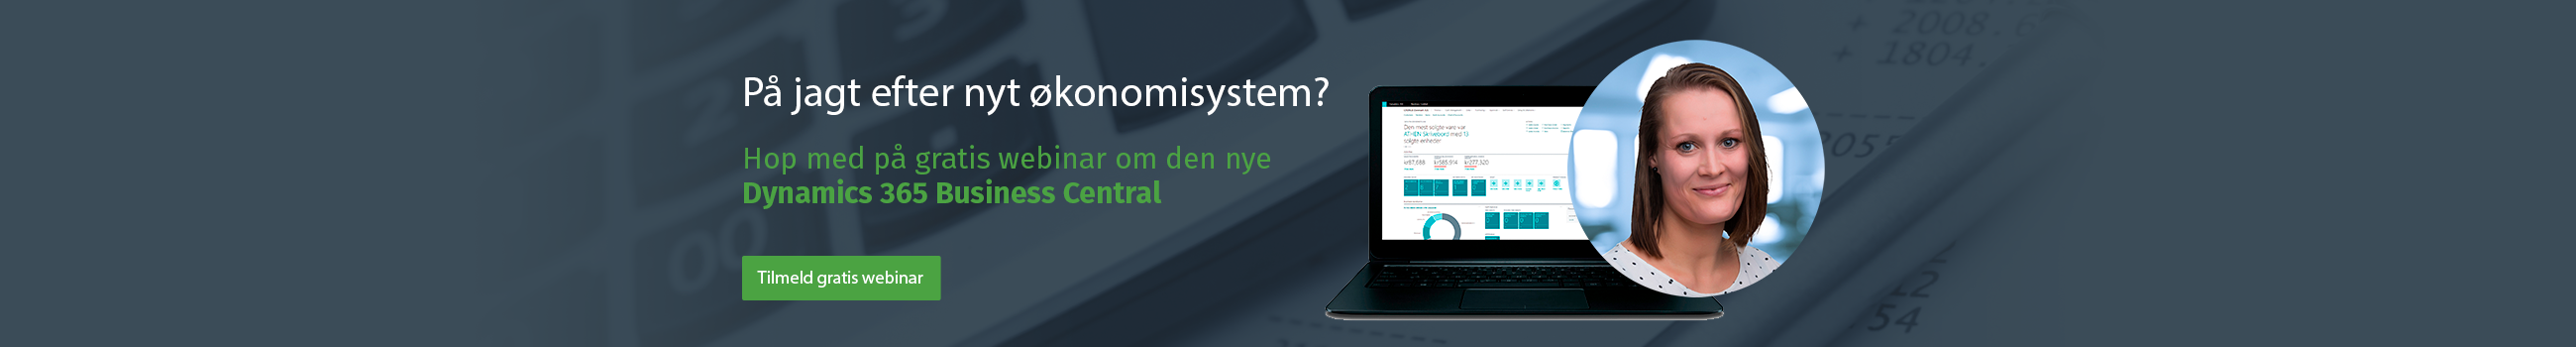 Gratis webinar om Dynamics 365 Business Central